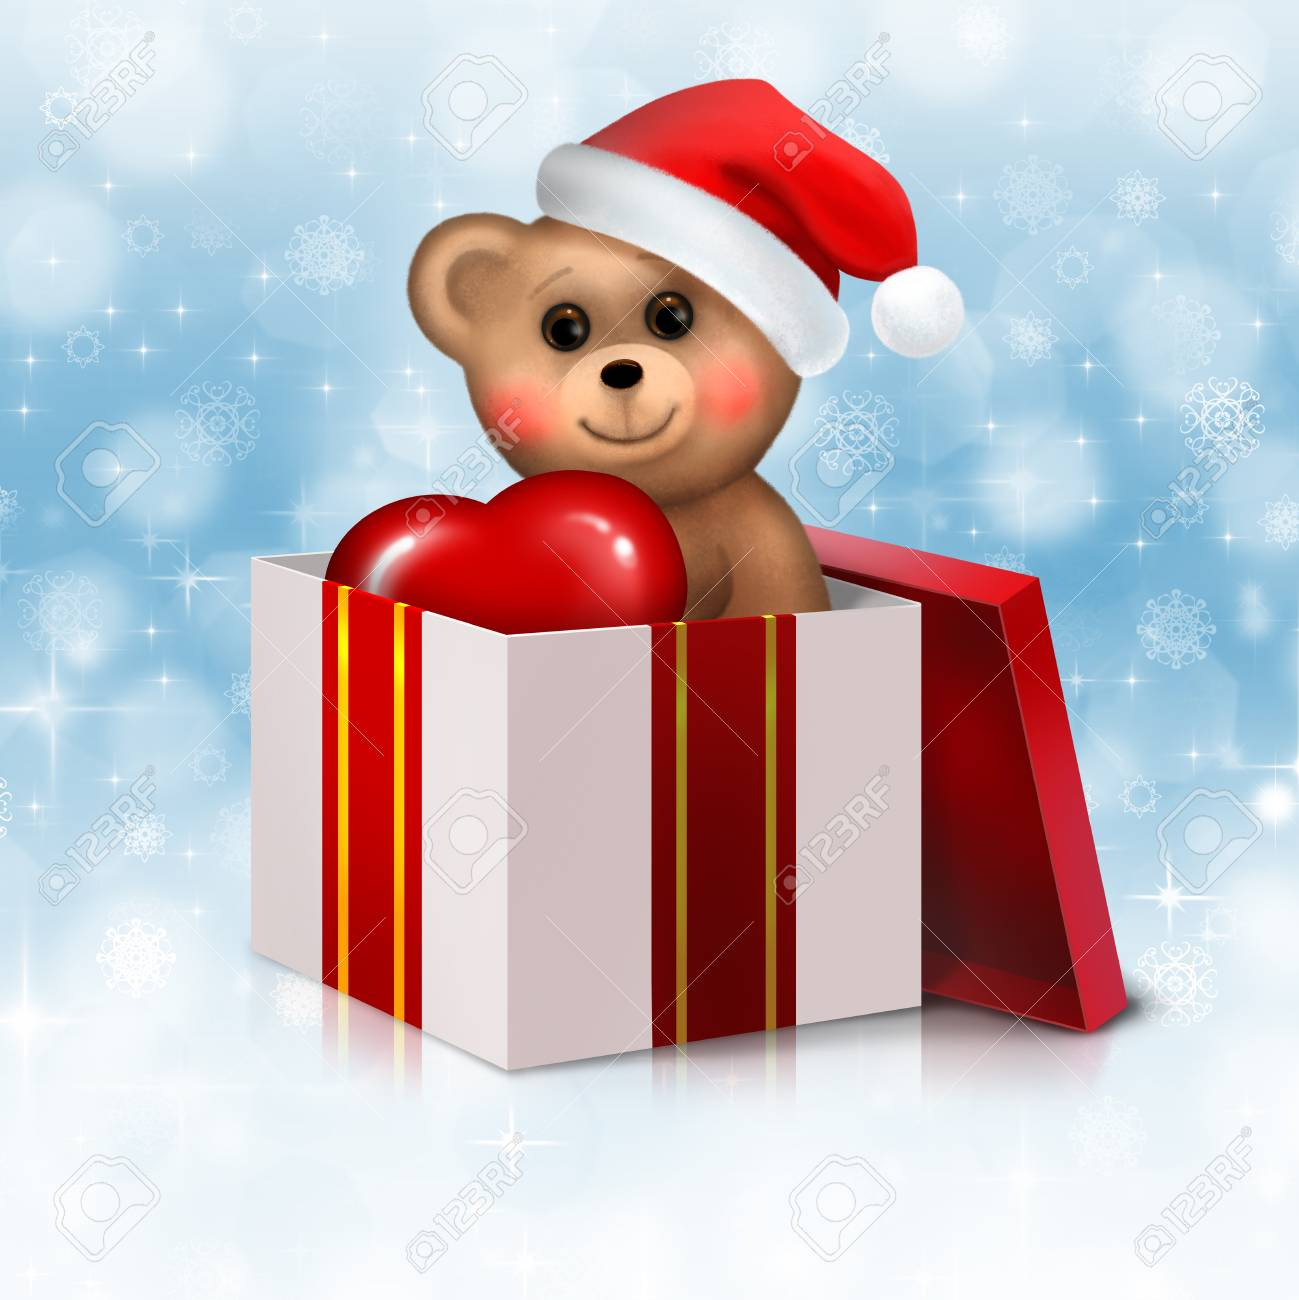 Christmas background with teddy bear in the gift box Stock Photo - 22503319